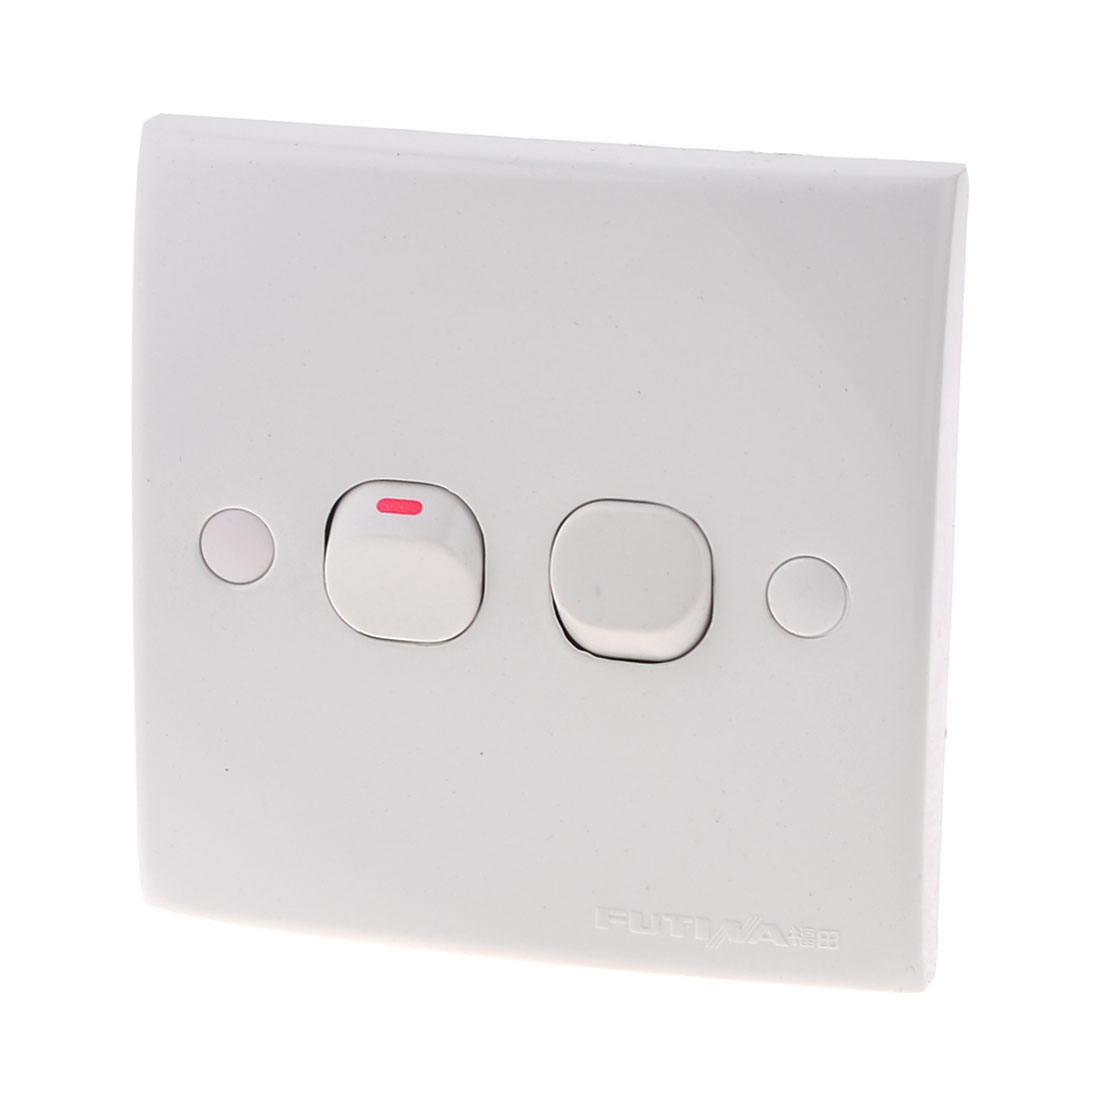 White Square Plastic Two Gang On-Off Push Button Type Wall Switch Plate